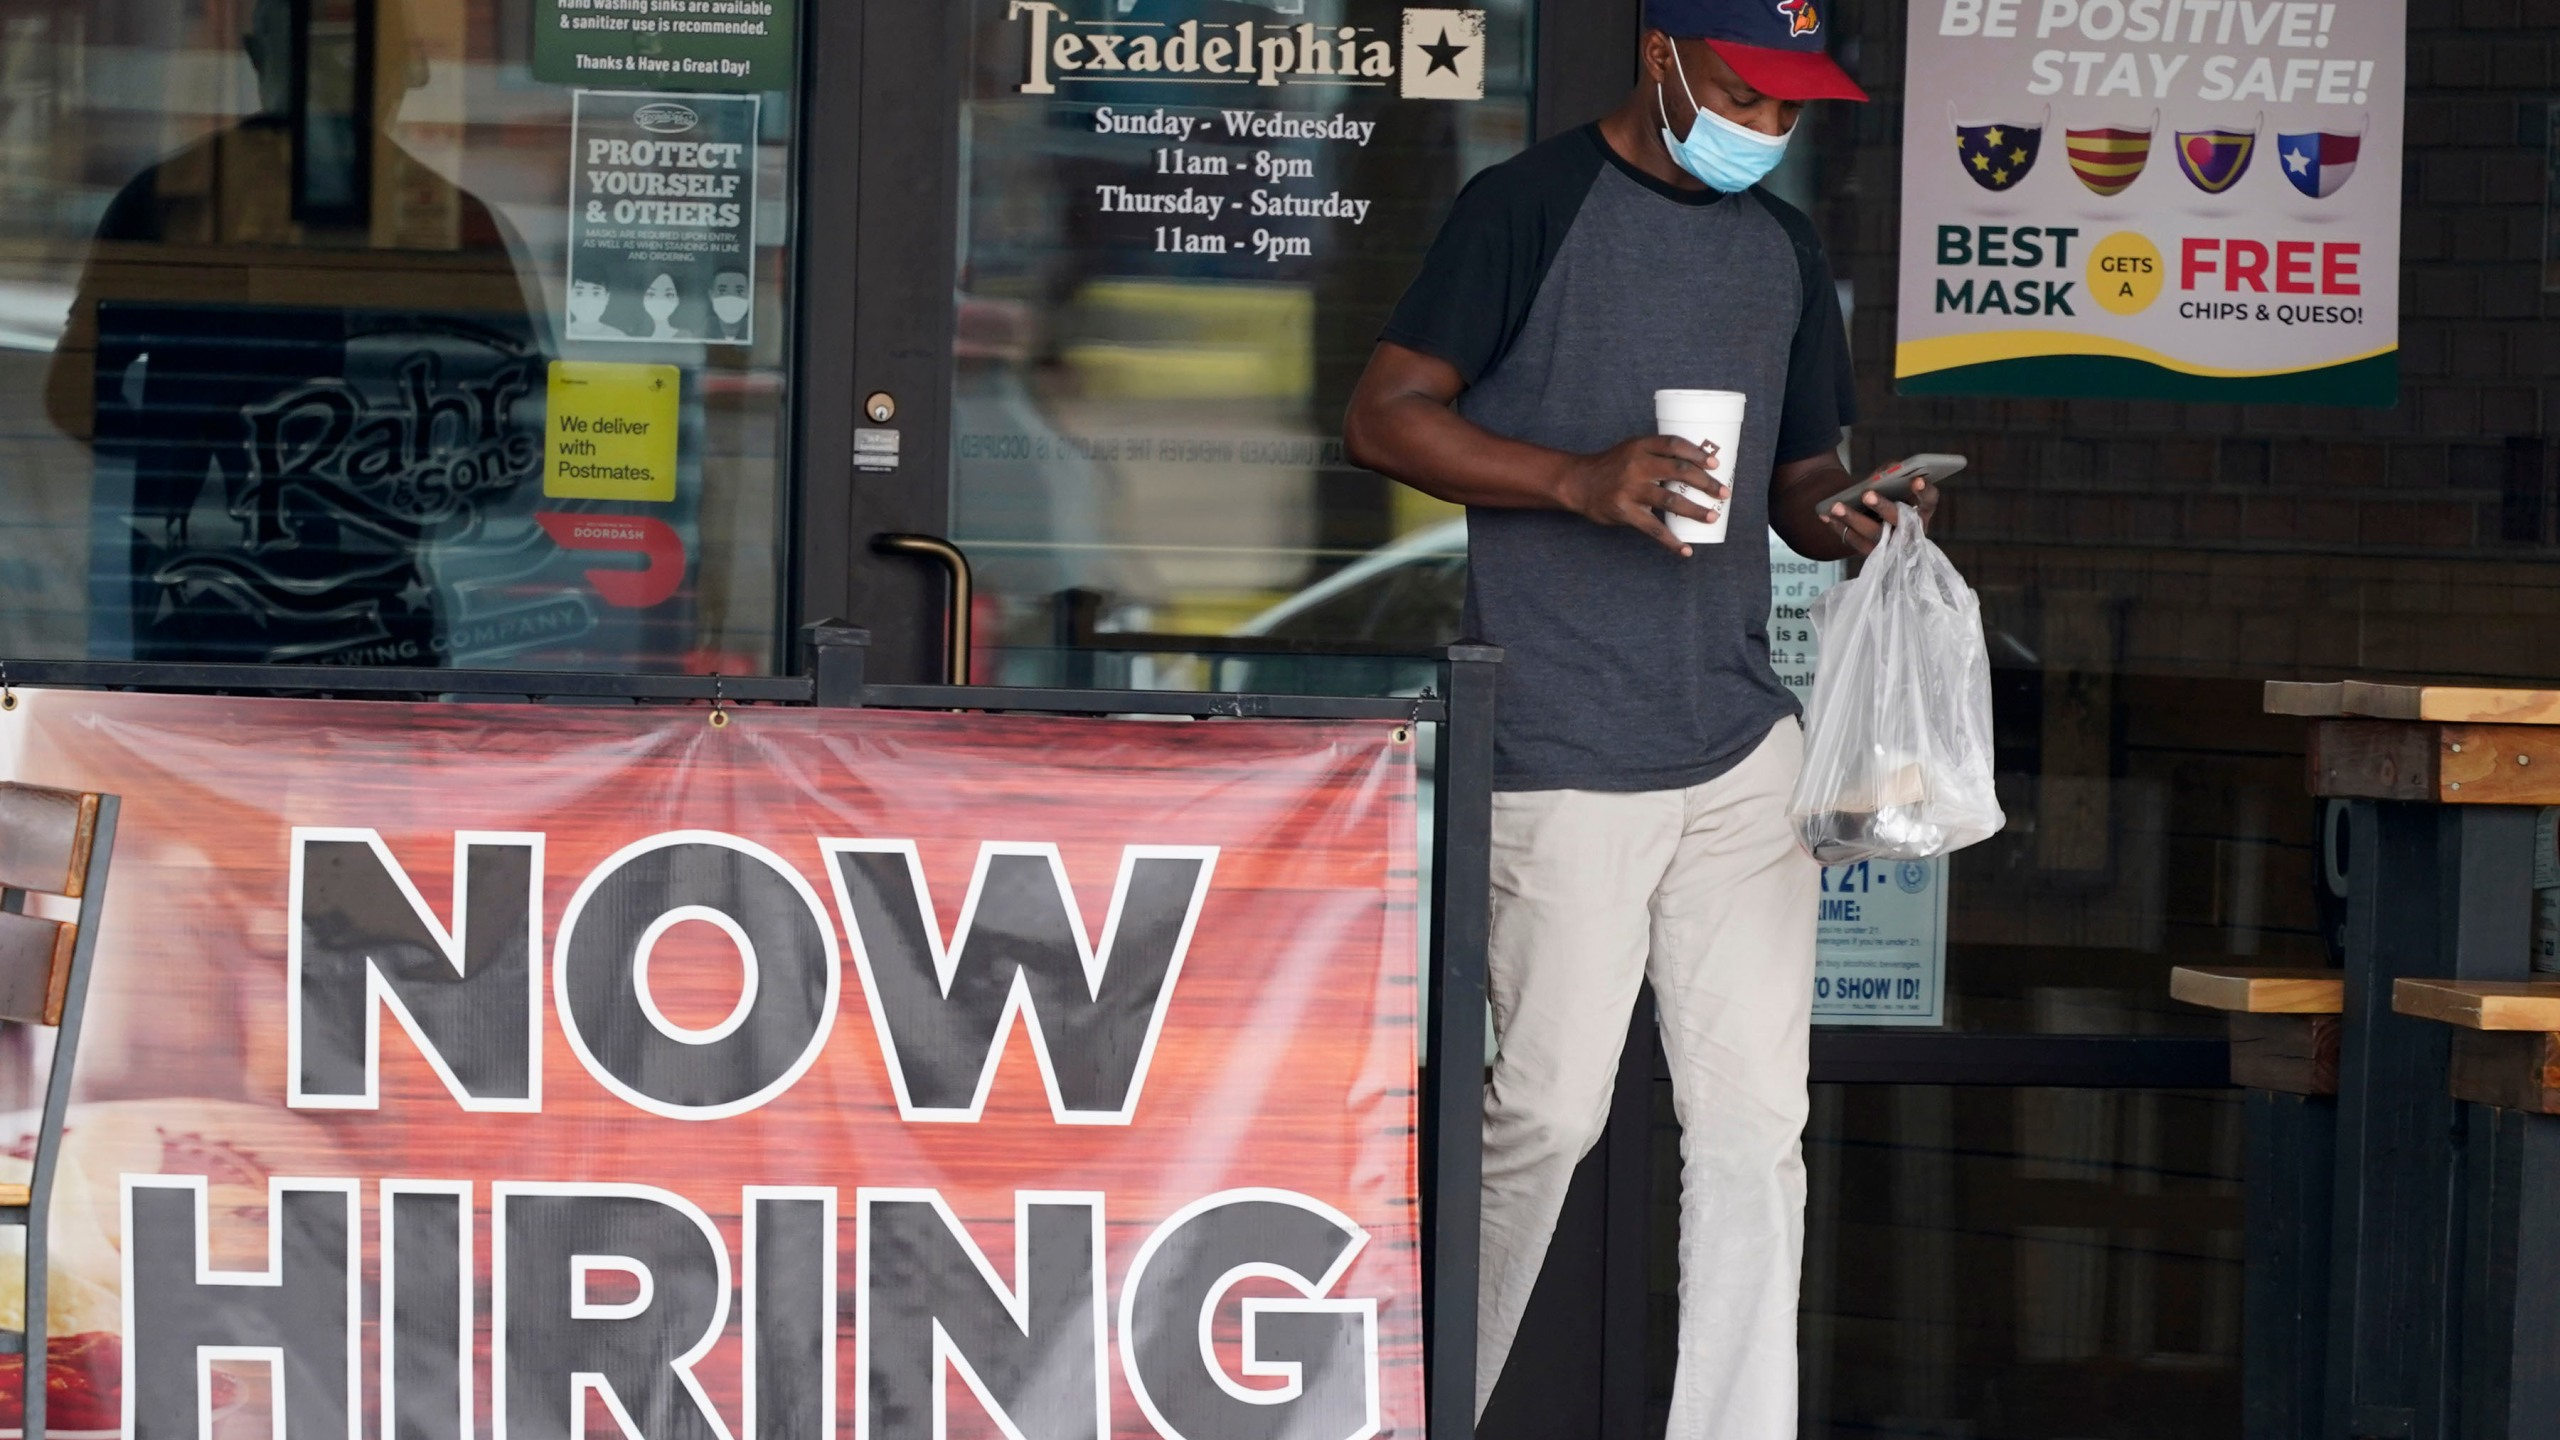 In this Sept. 2, 2020, file photo, a customer walks past a now hiring sign at an eatery in Richardson, Texas. The Labor Department reported unemployment numbers Thursday, Sept. 3. (AP Photo/LM Otero, File)